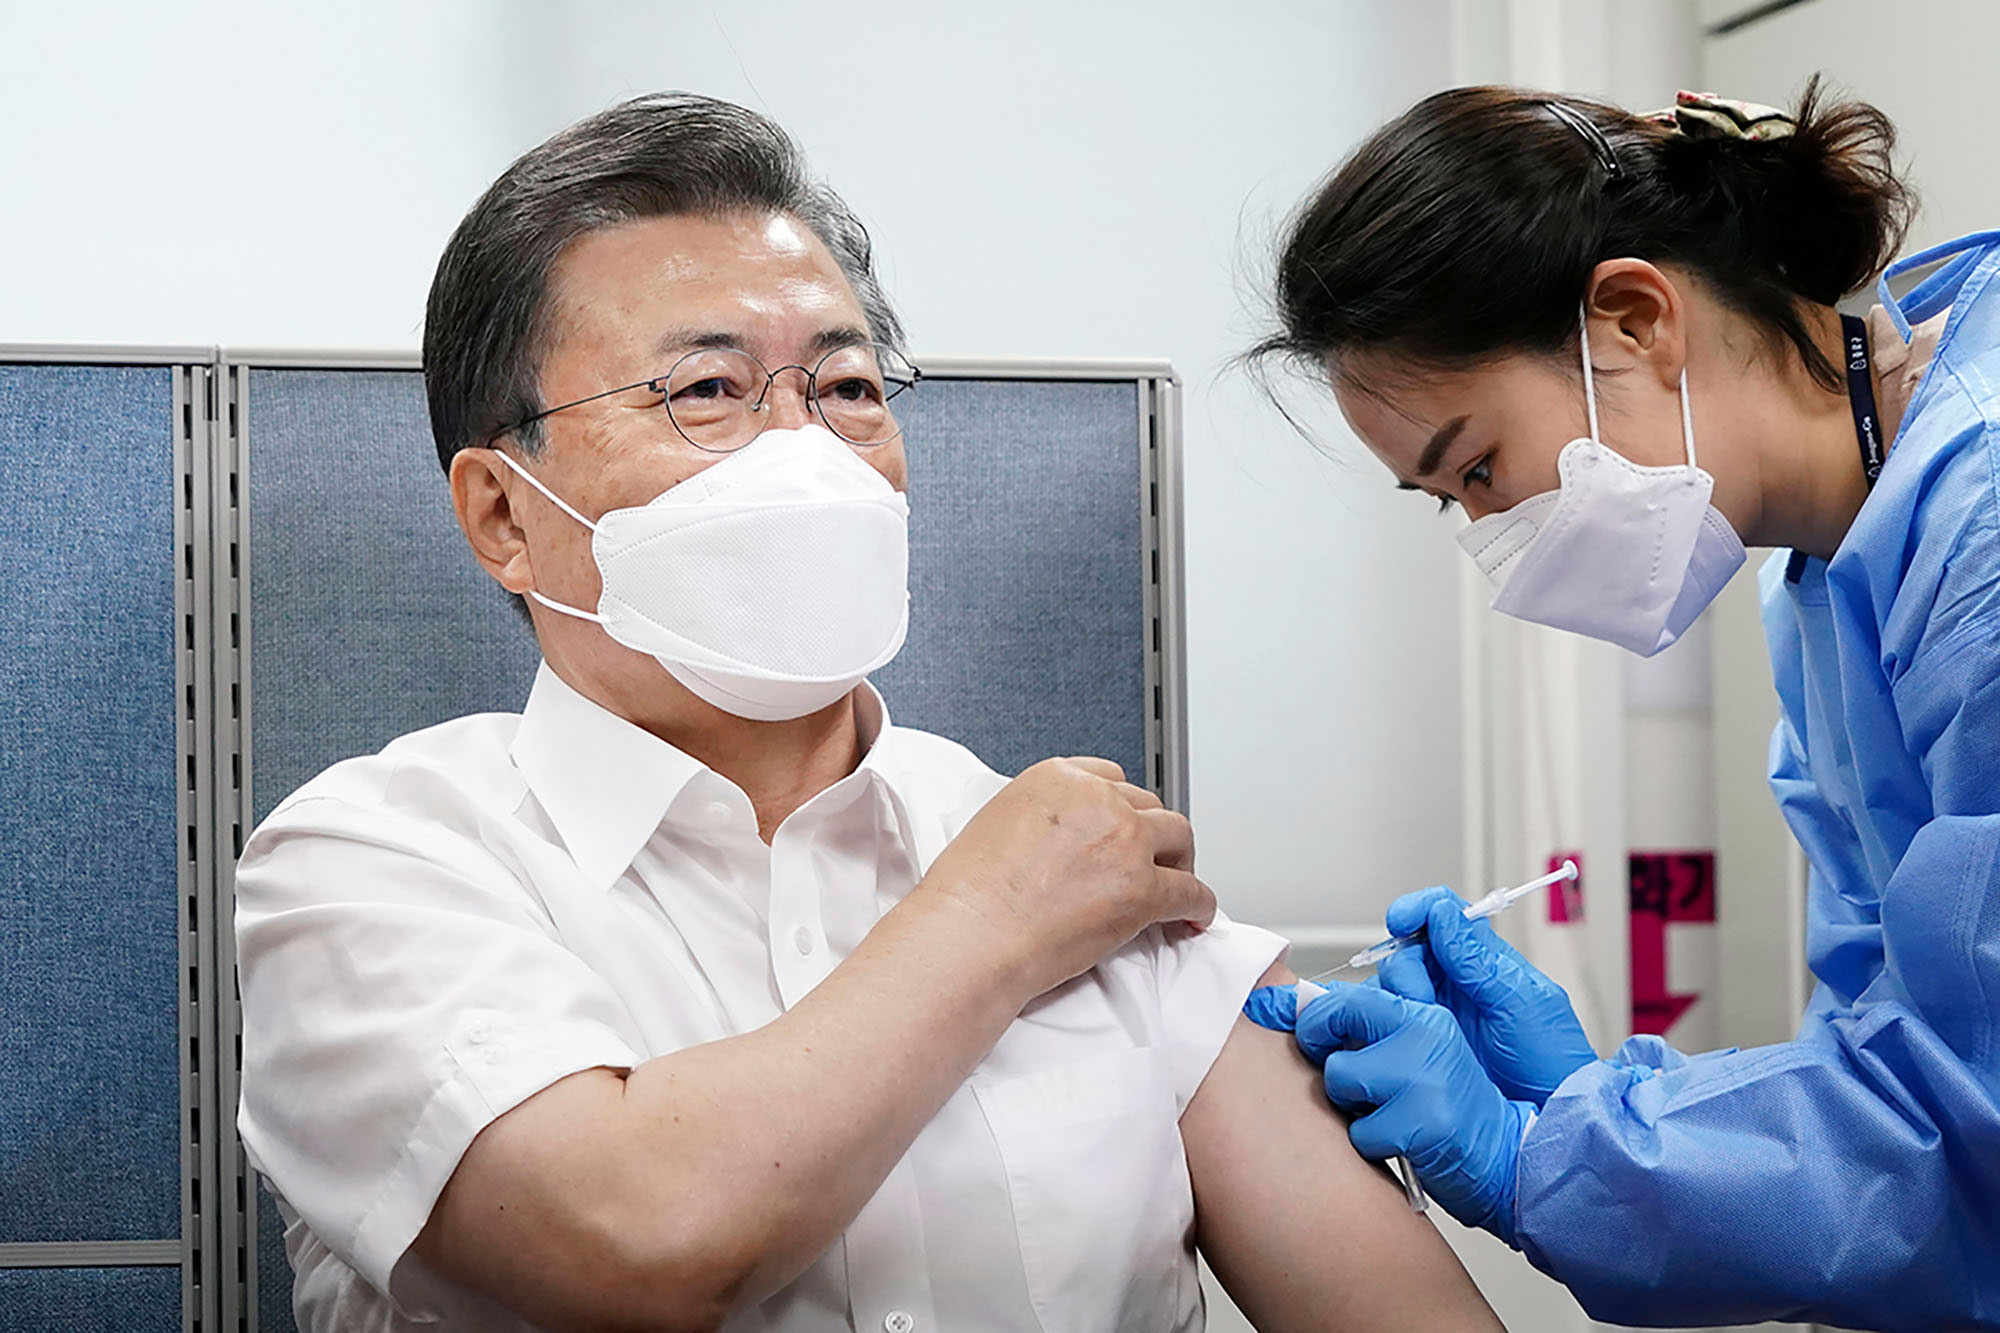 In this image provided by the South Korean Presidential Blue House, President Moon Jae-in receives a dose of the AstraZeneca Covid-19 vaccine in Seoul on March 23.